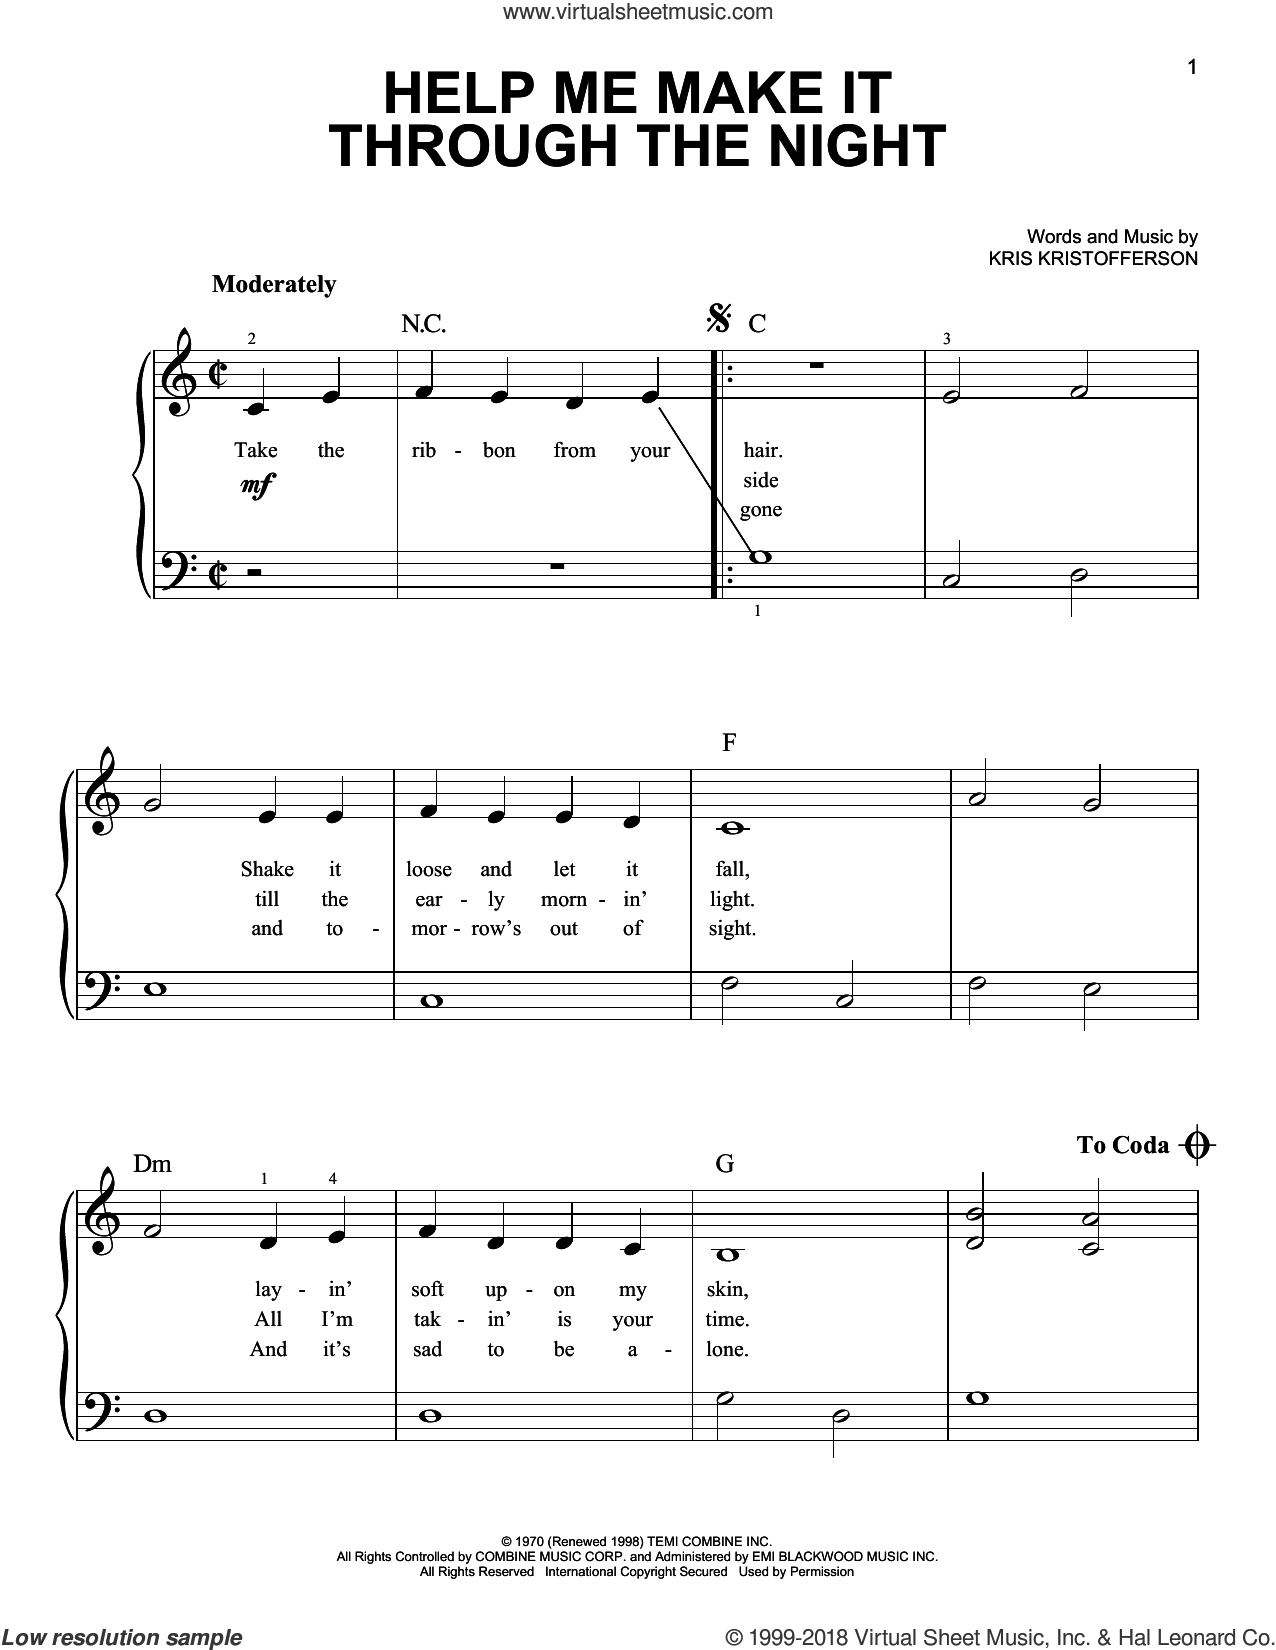 Help Me Make It Through The Night sheet music for piano solo by Kris Kristofferson